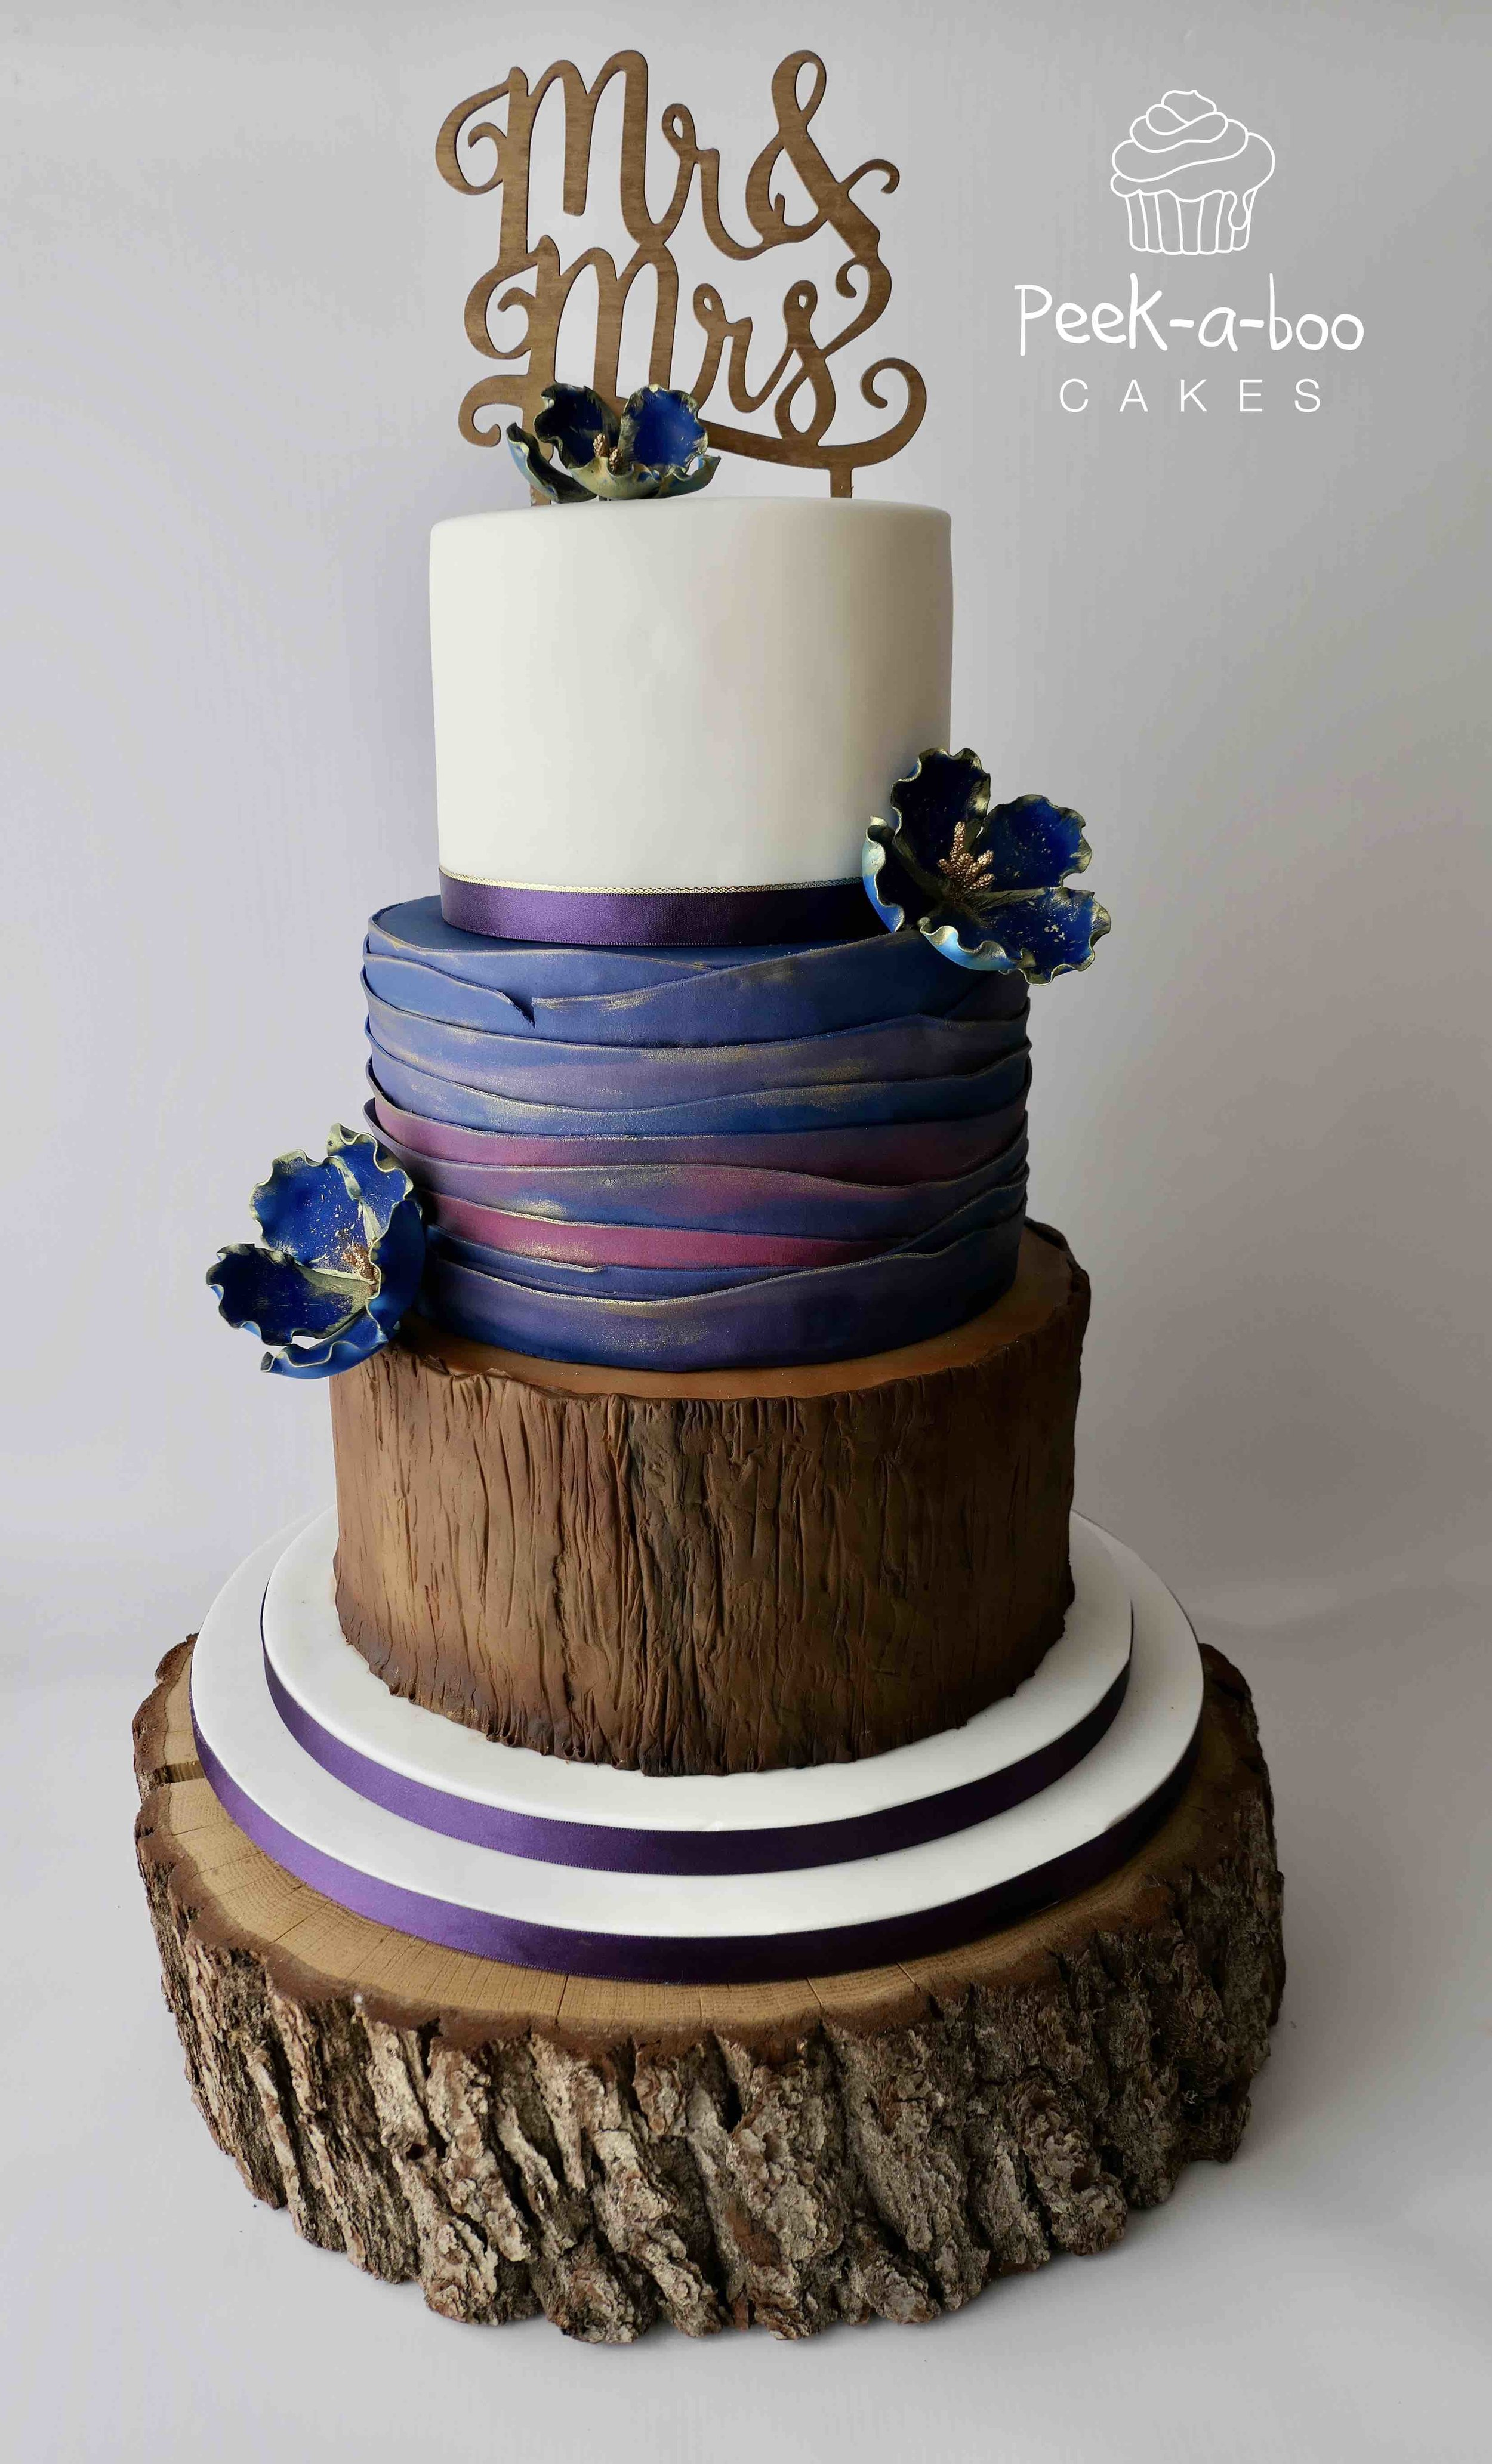 Wedding Cakes Www Peek A Boocakes Co Uk